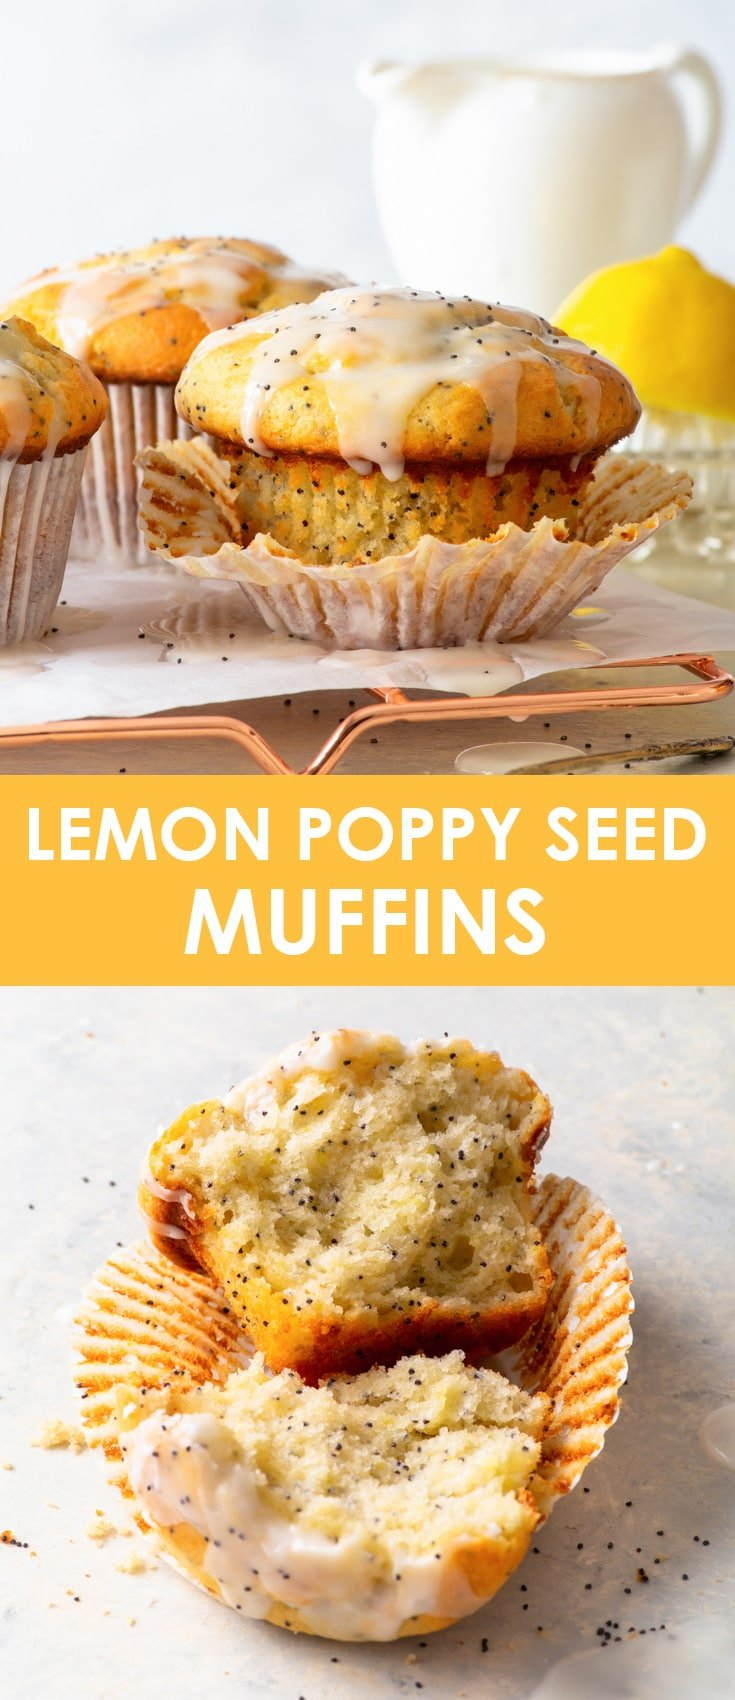 Lemon Poppy Seed Muffins (Gluten Free) - You will LOVE these lemon poppy seed muffins, with their fluffy, moist, flavour-packed interior, the gorgeous tall bakery-style muffin top and the tangy lemon icing. They're super easy to make and gluten free! Gluten free muffins. Gluten free dessert recipes. Lemon desserts. Easy muffin recipe. Gluten free breakfast recipe ideas. Easy dessert recipe. Lemon drizzle. #muffins #glutenfree